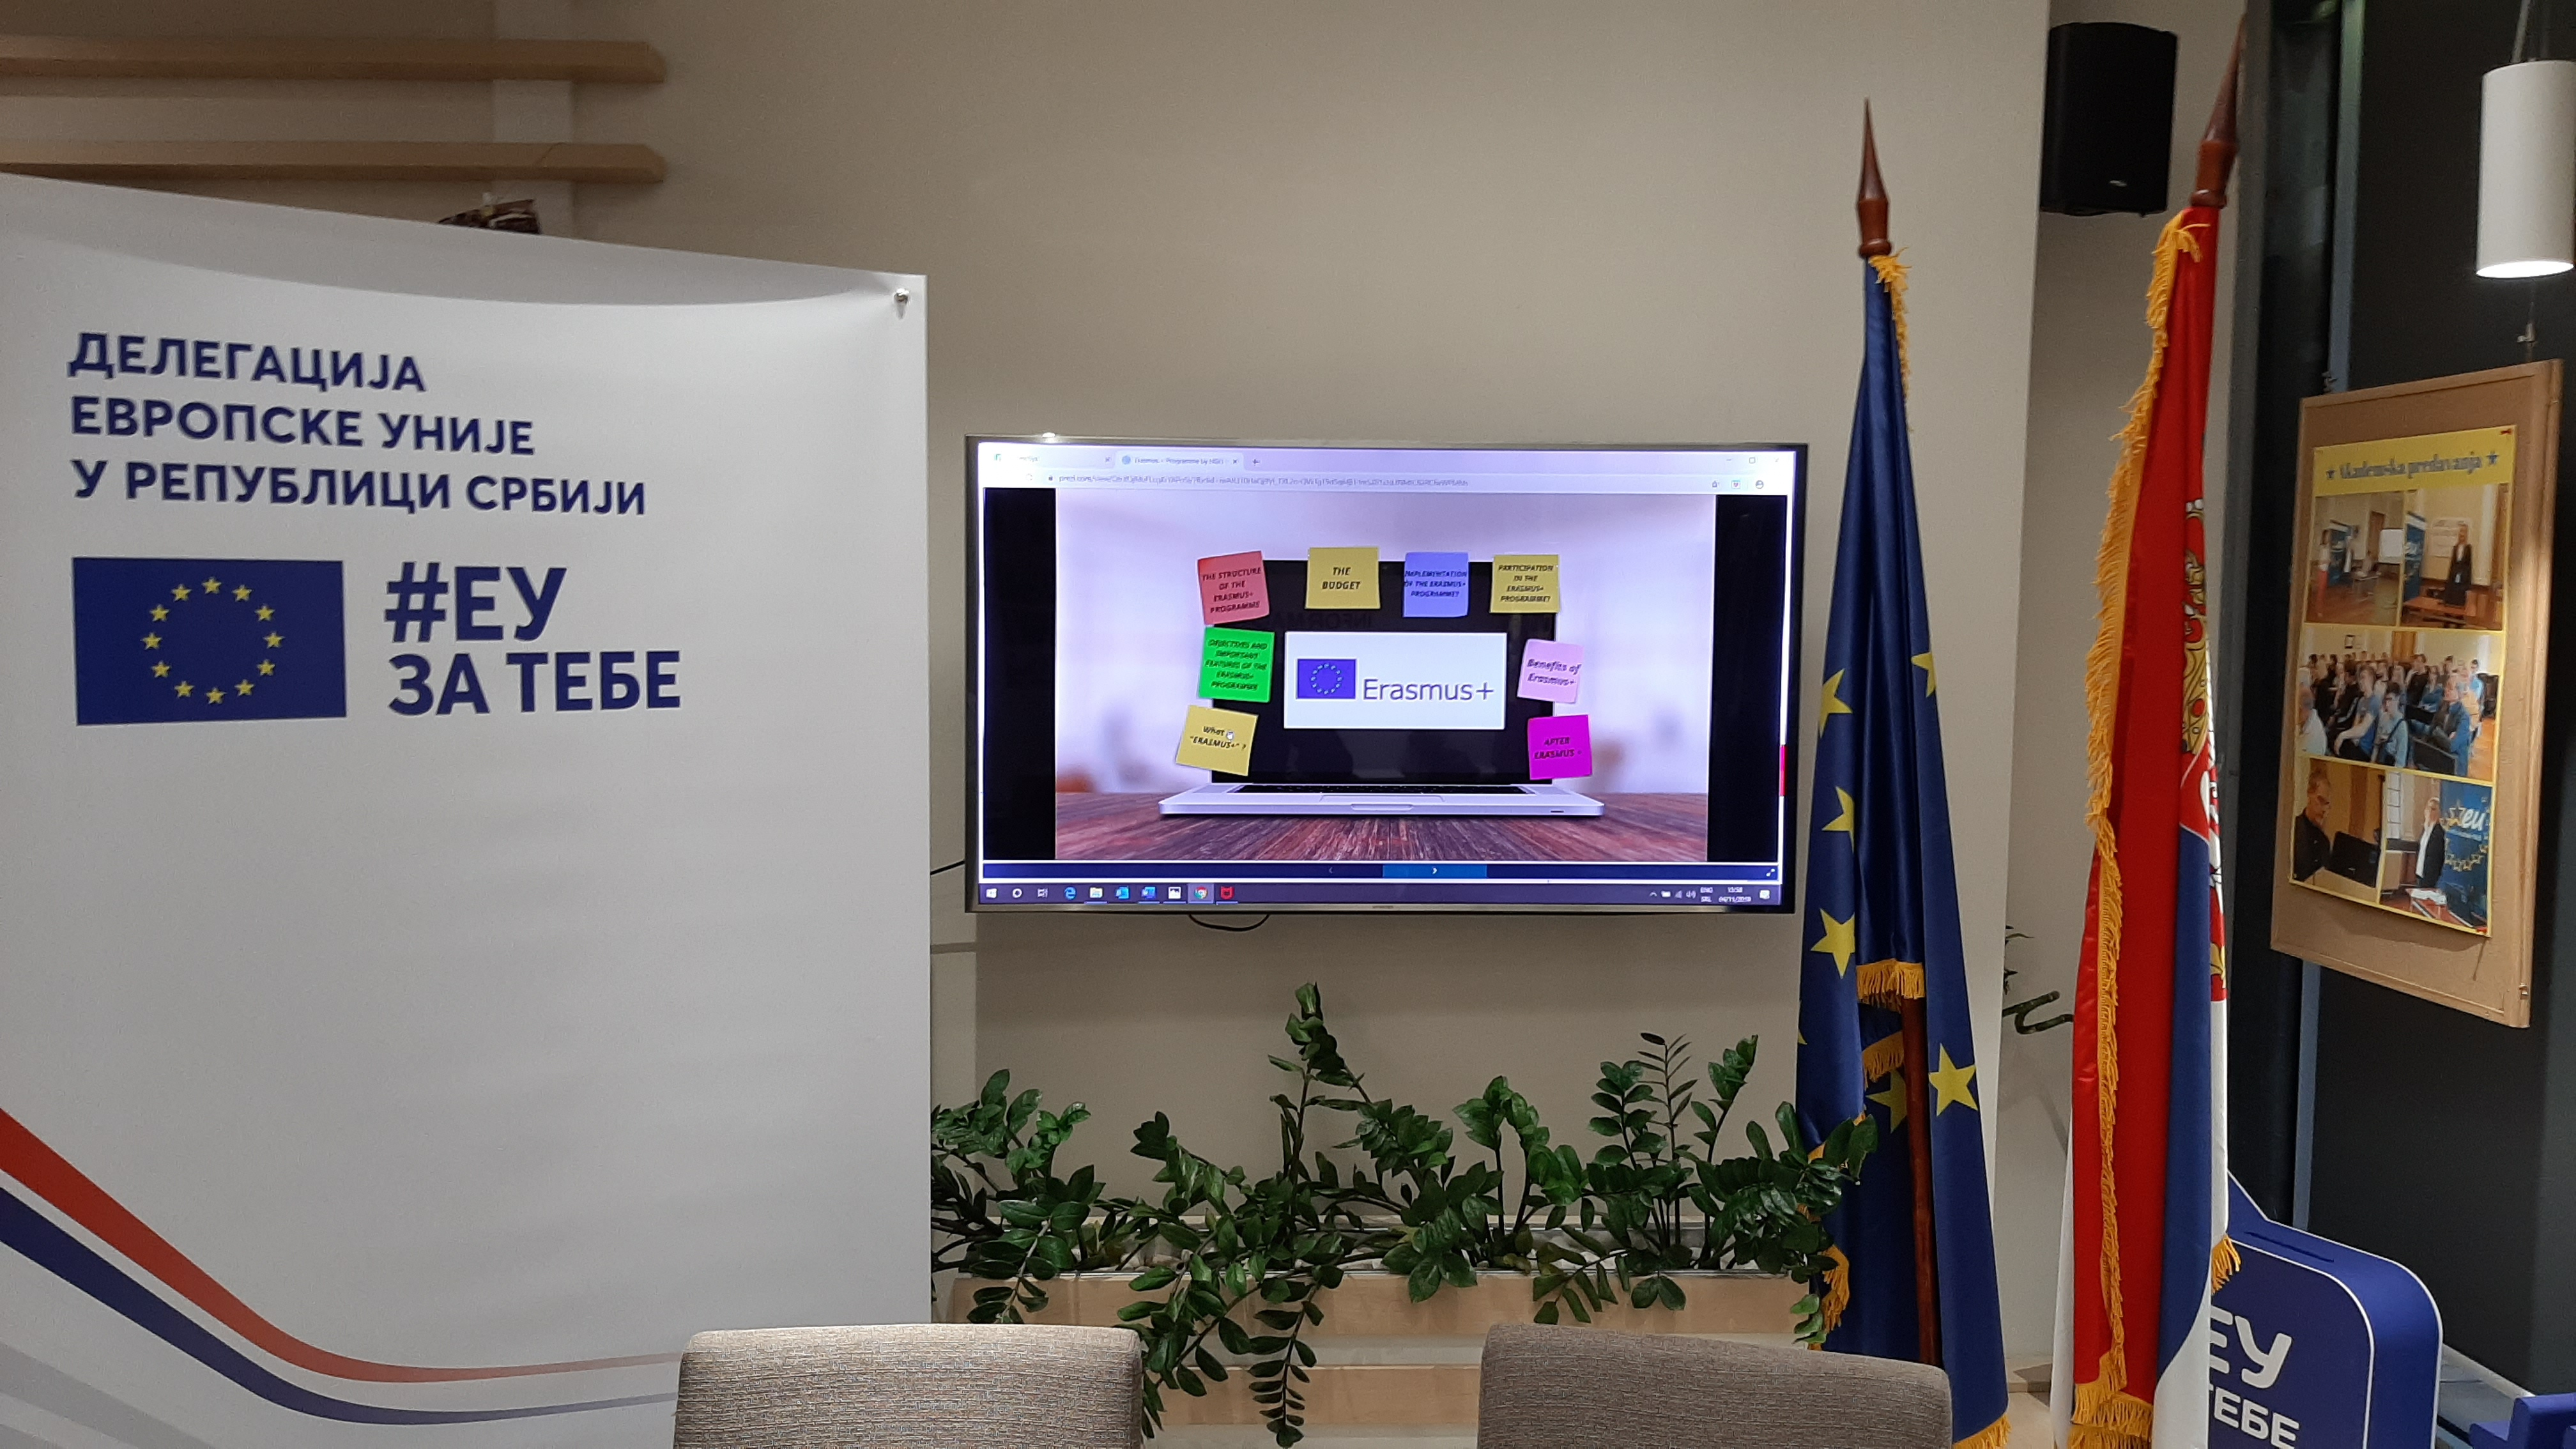 Youth Workers Alliance Vranje/ Youth Association Bell – Capacity Building Activity 5